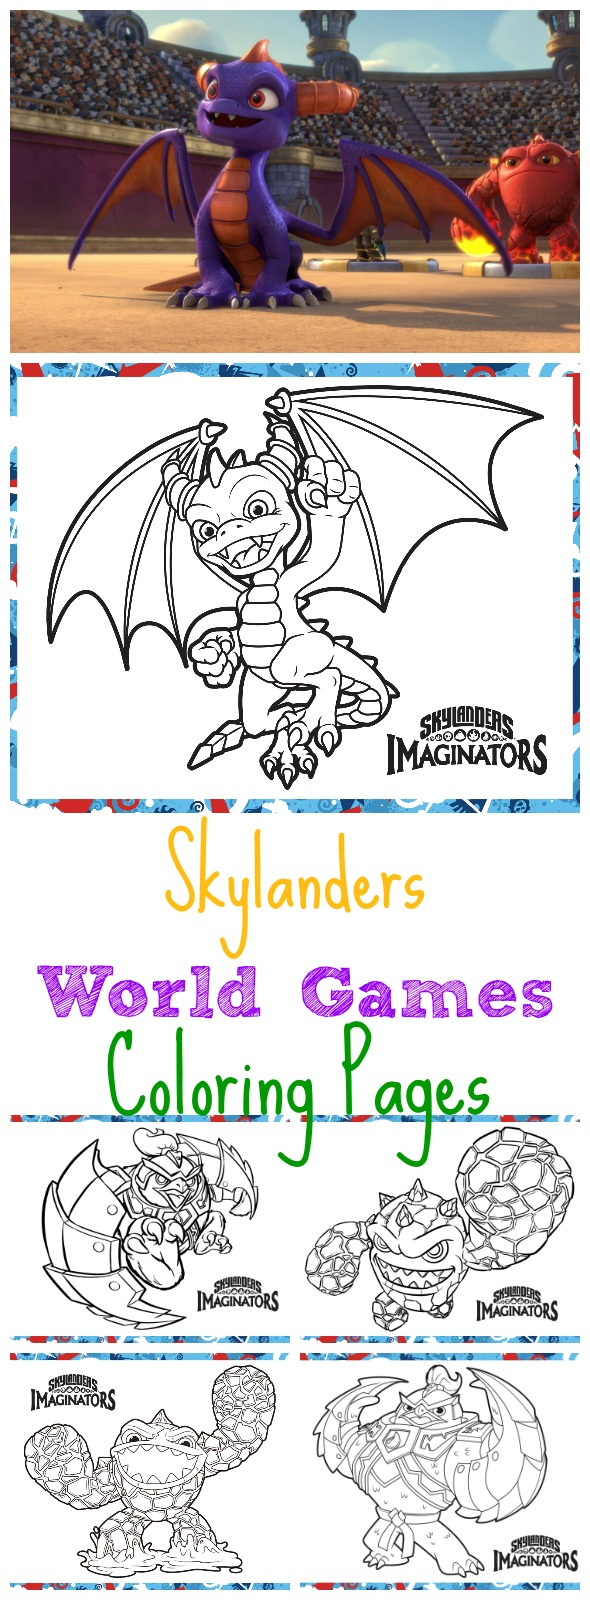 Skylanders World Games Coloring Pages (free printable activities for kids - not sponsored)